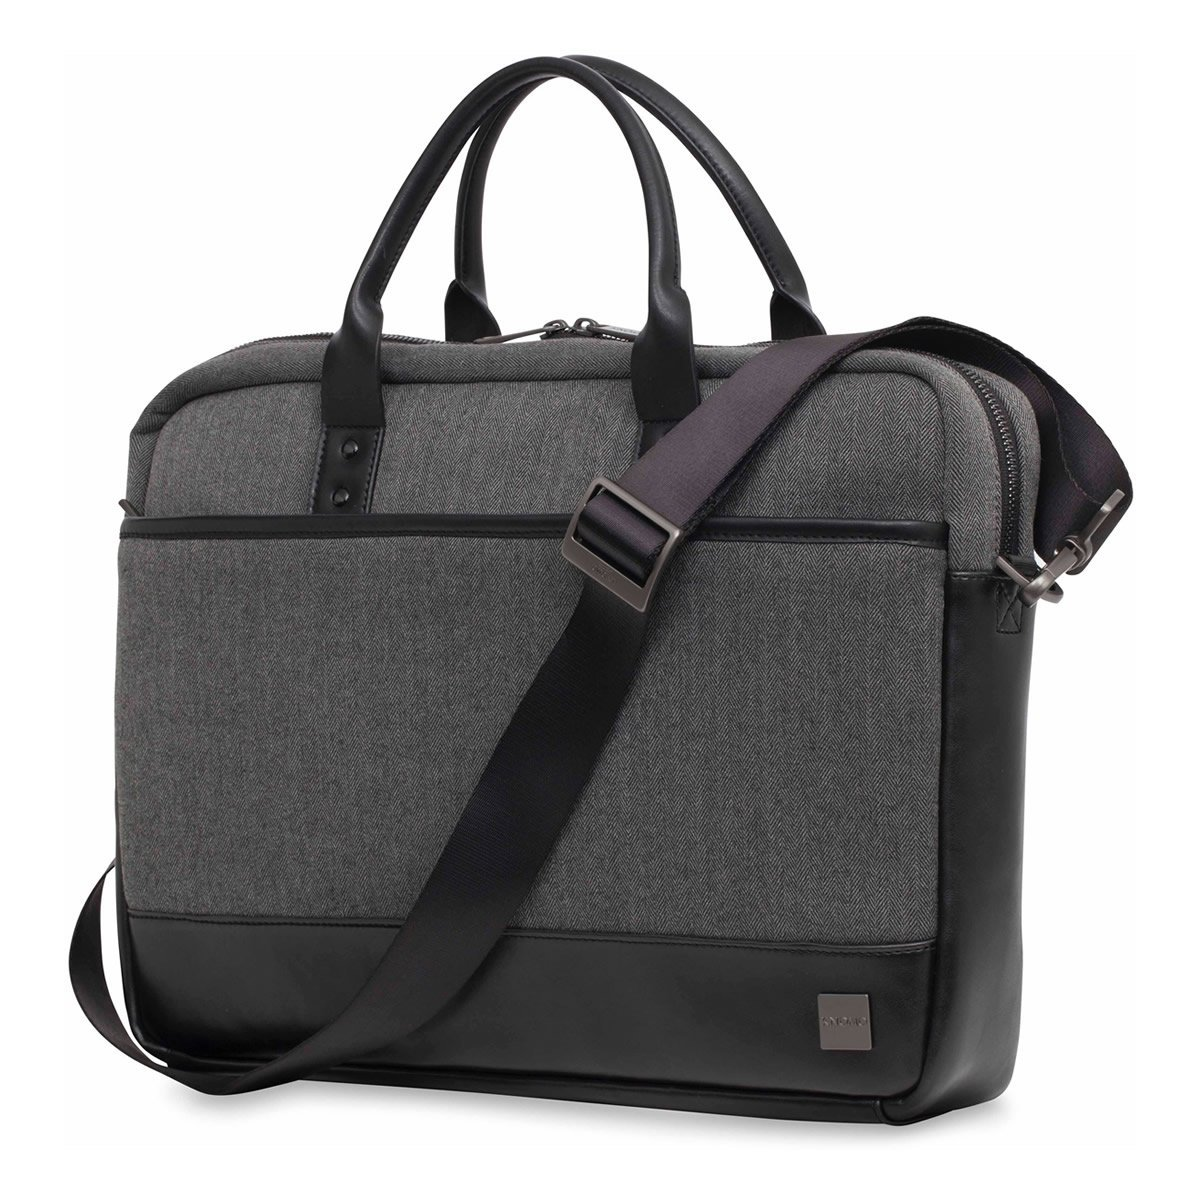 6db1c2a196c5 Cheap Luggage Briefcase, find Luggage Briefcase deals on line at ...